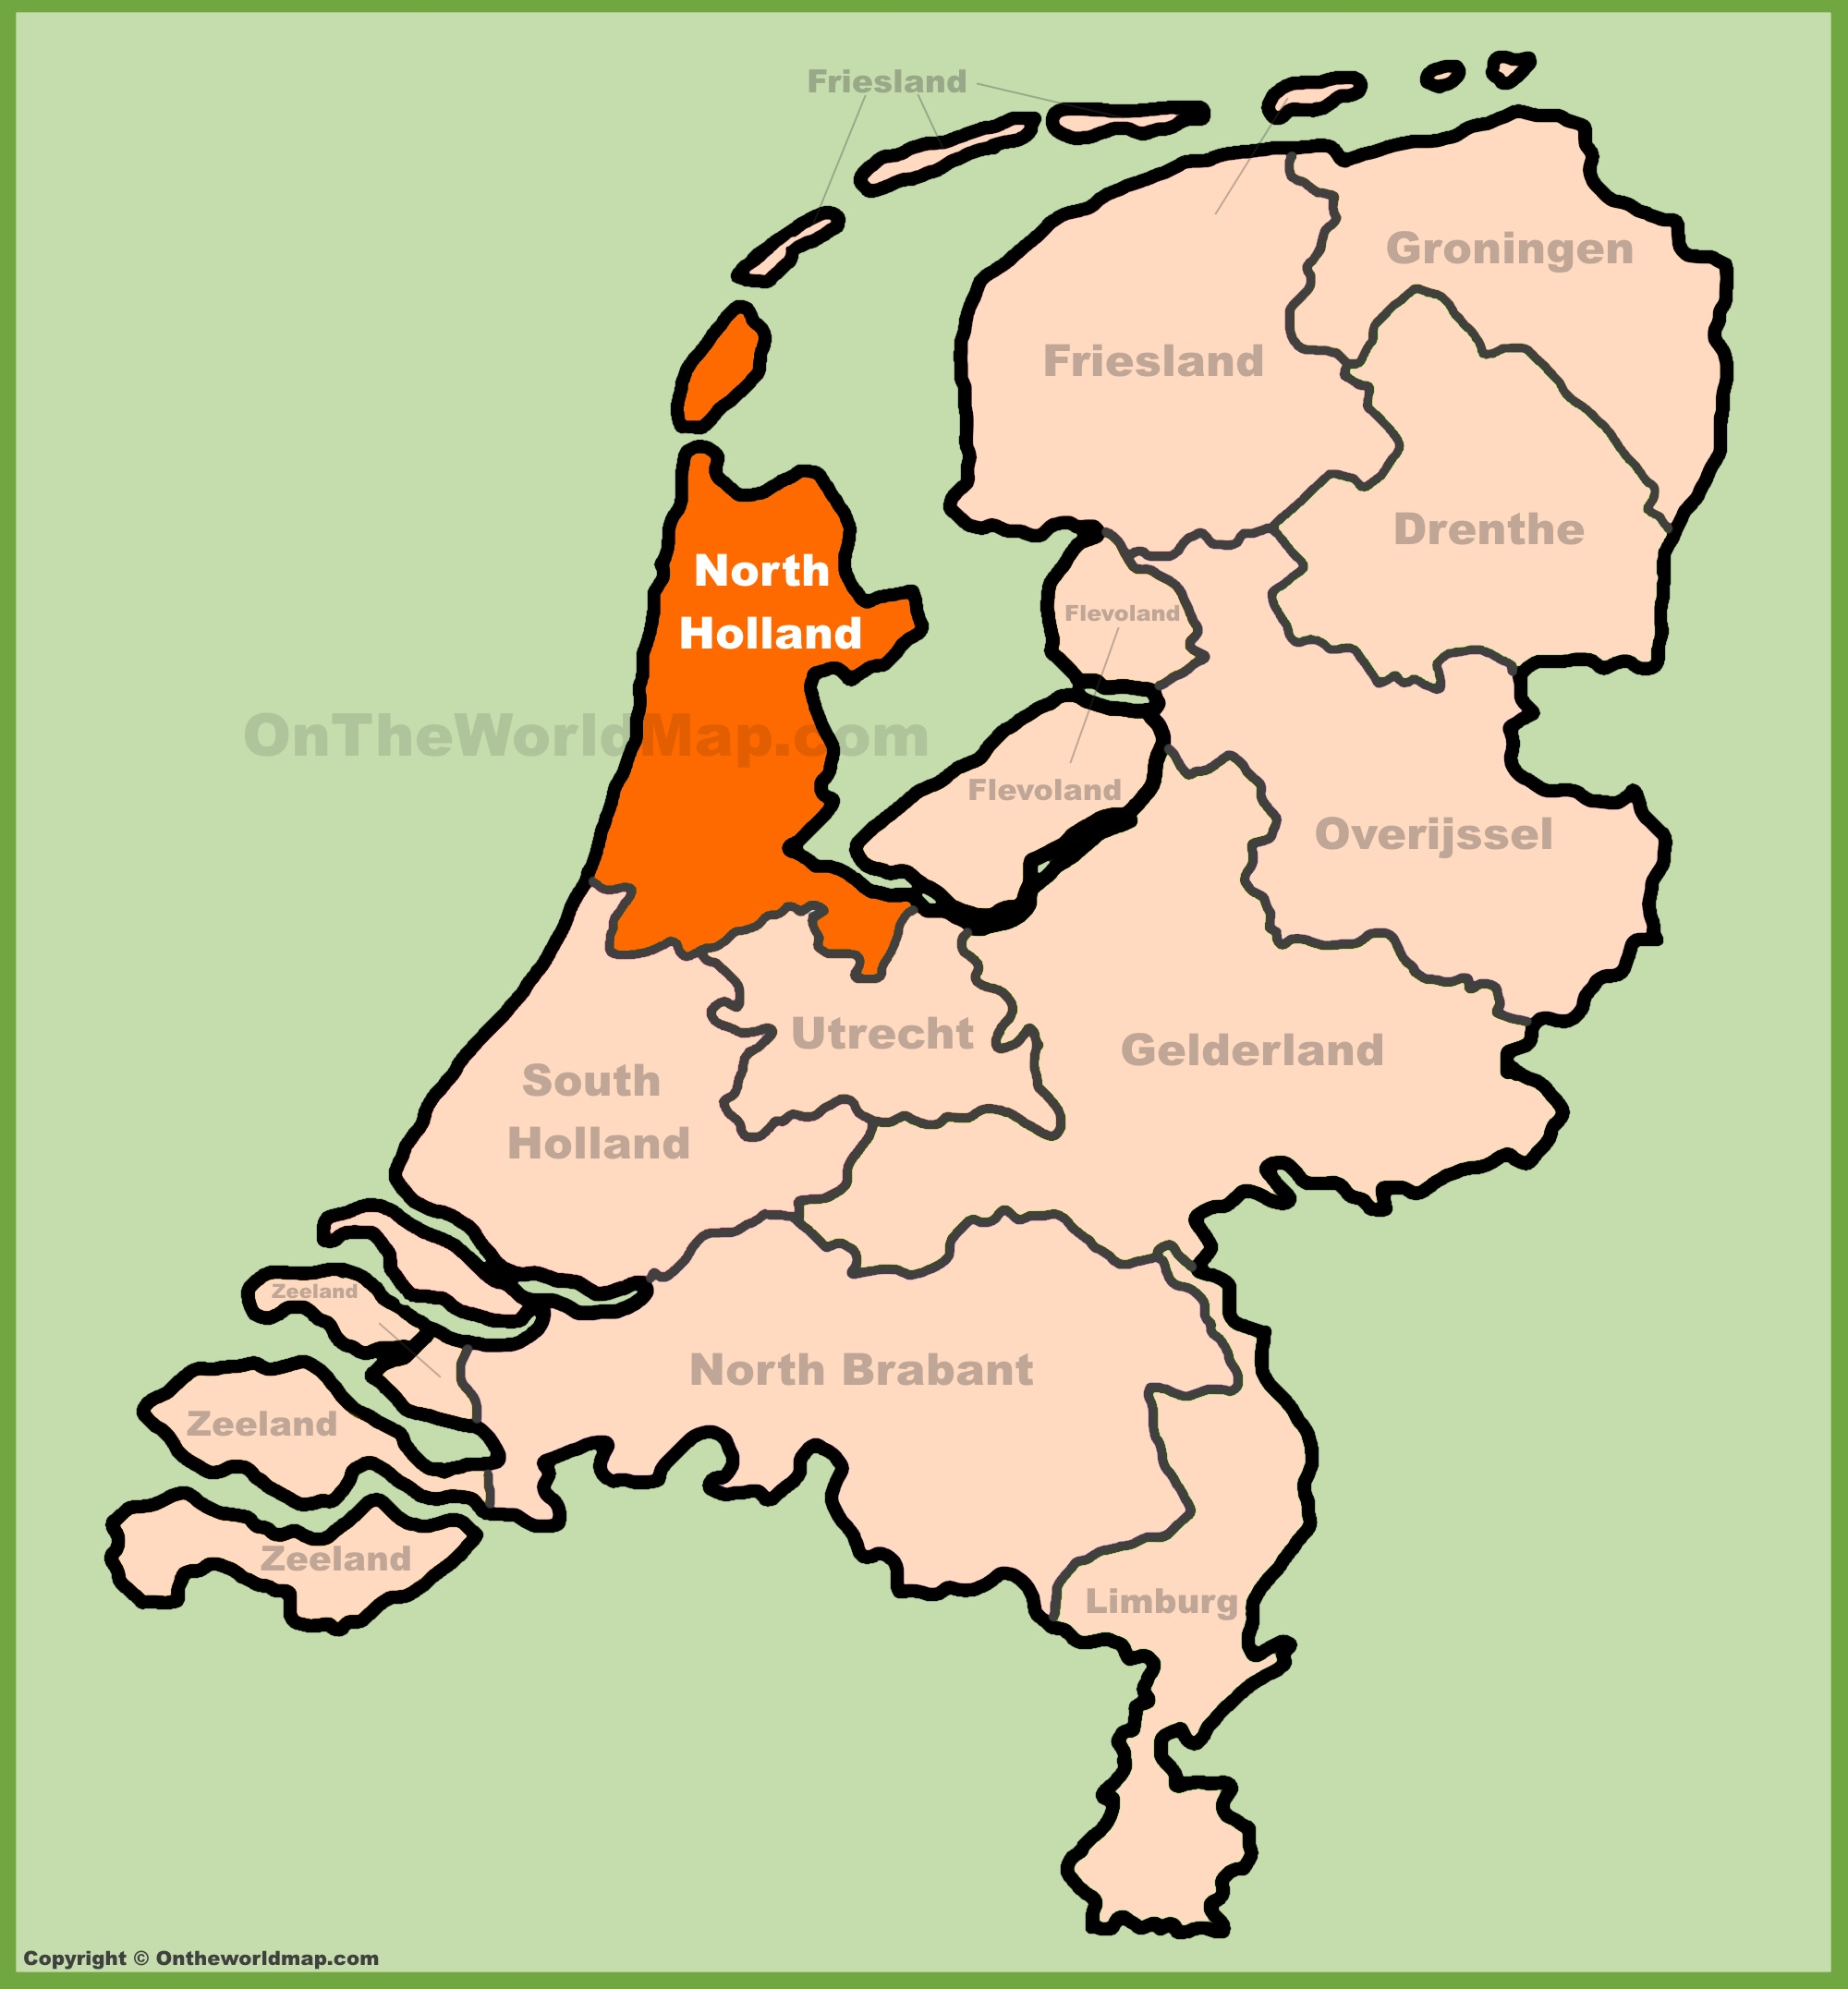 North Holland location on the Netherlands map